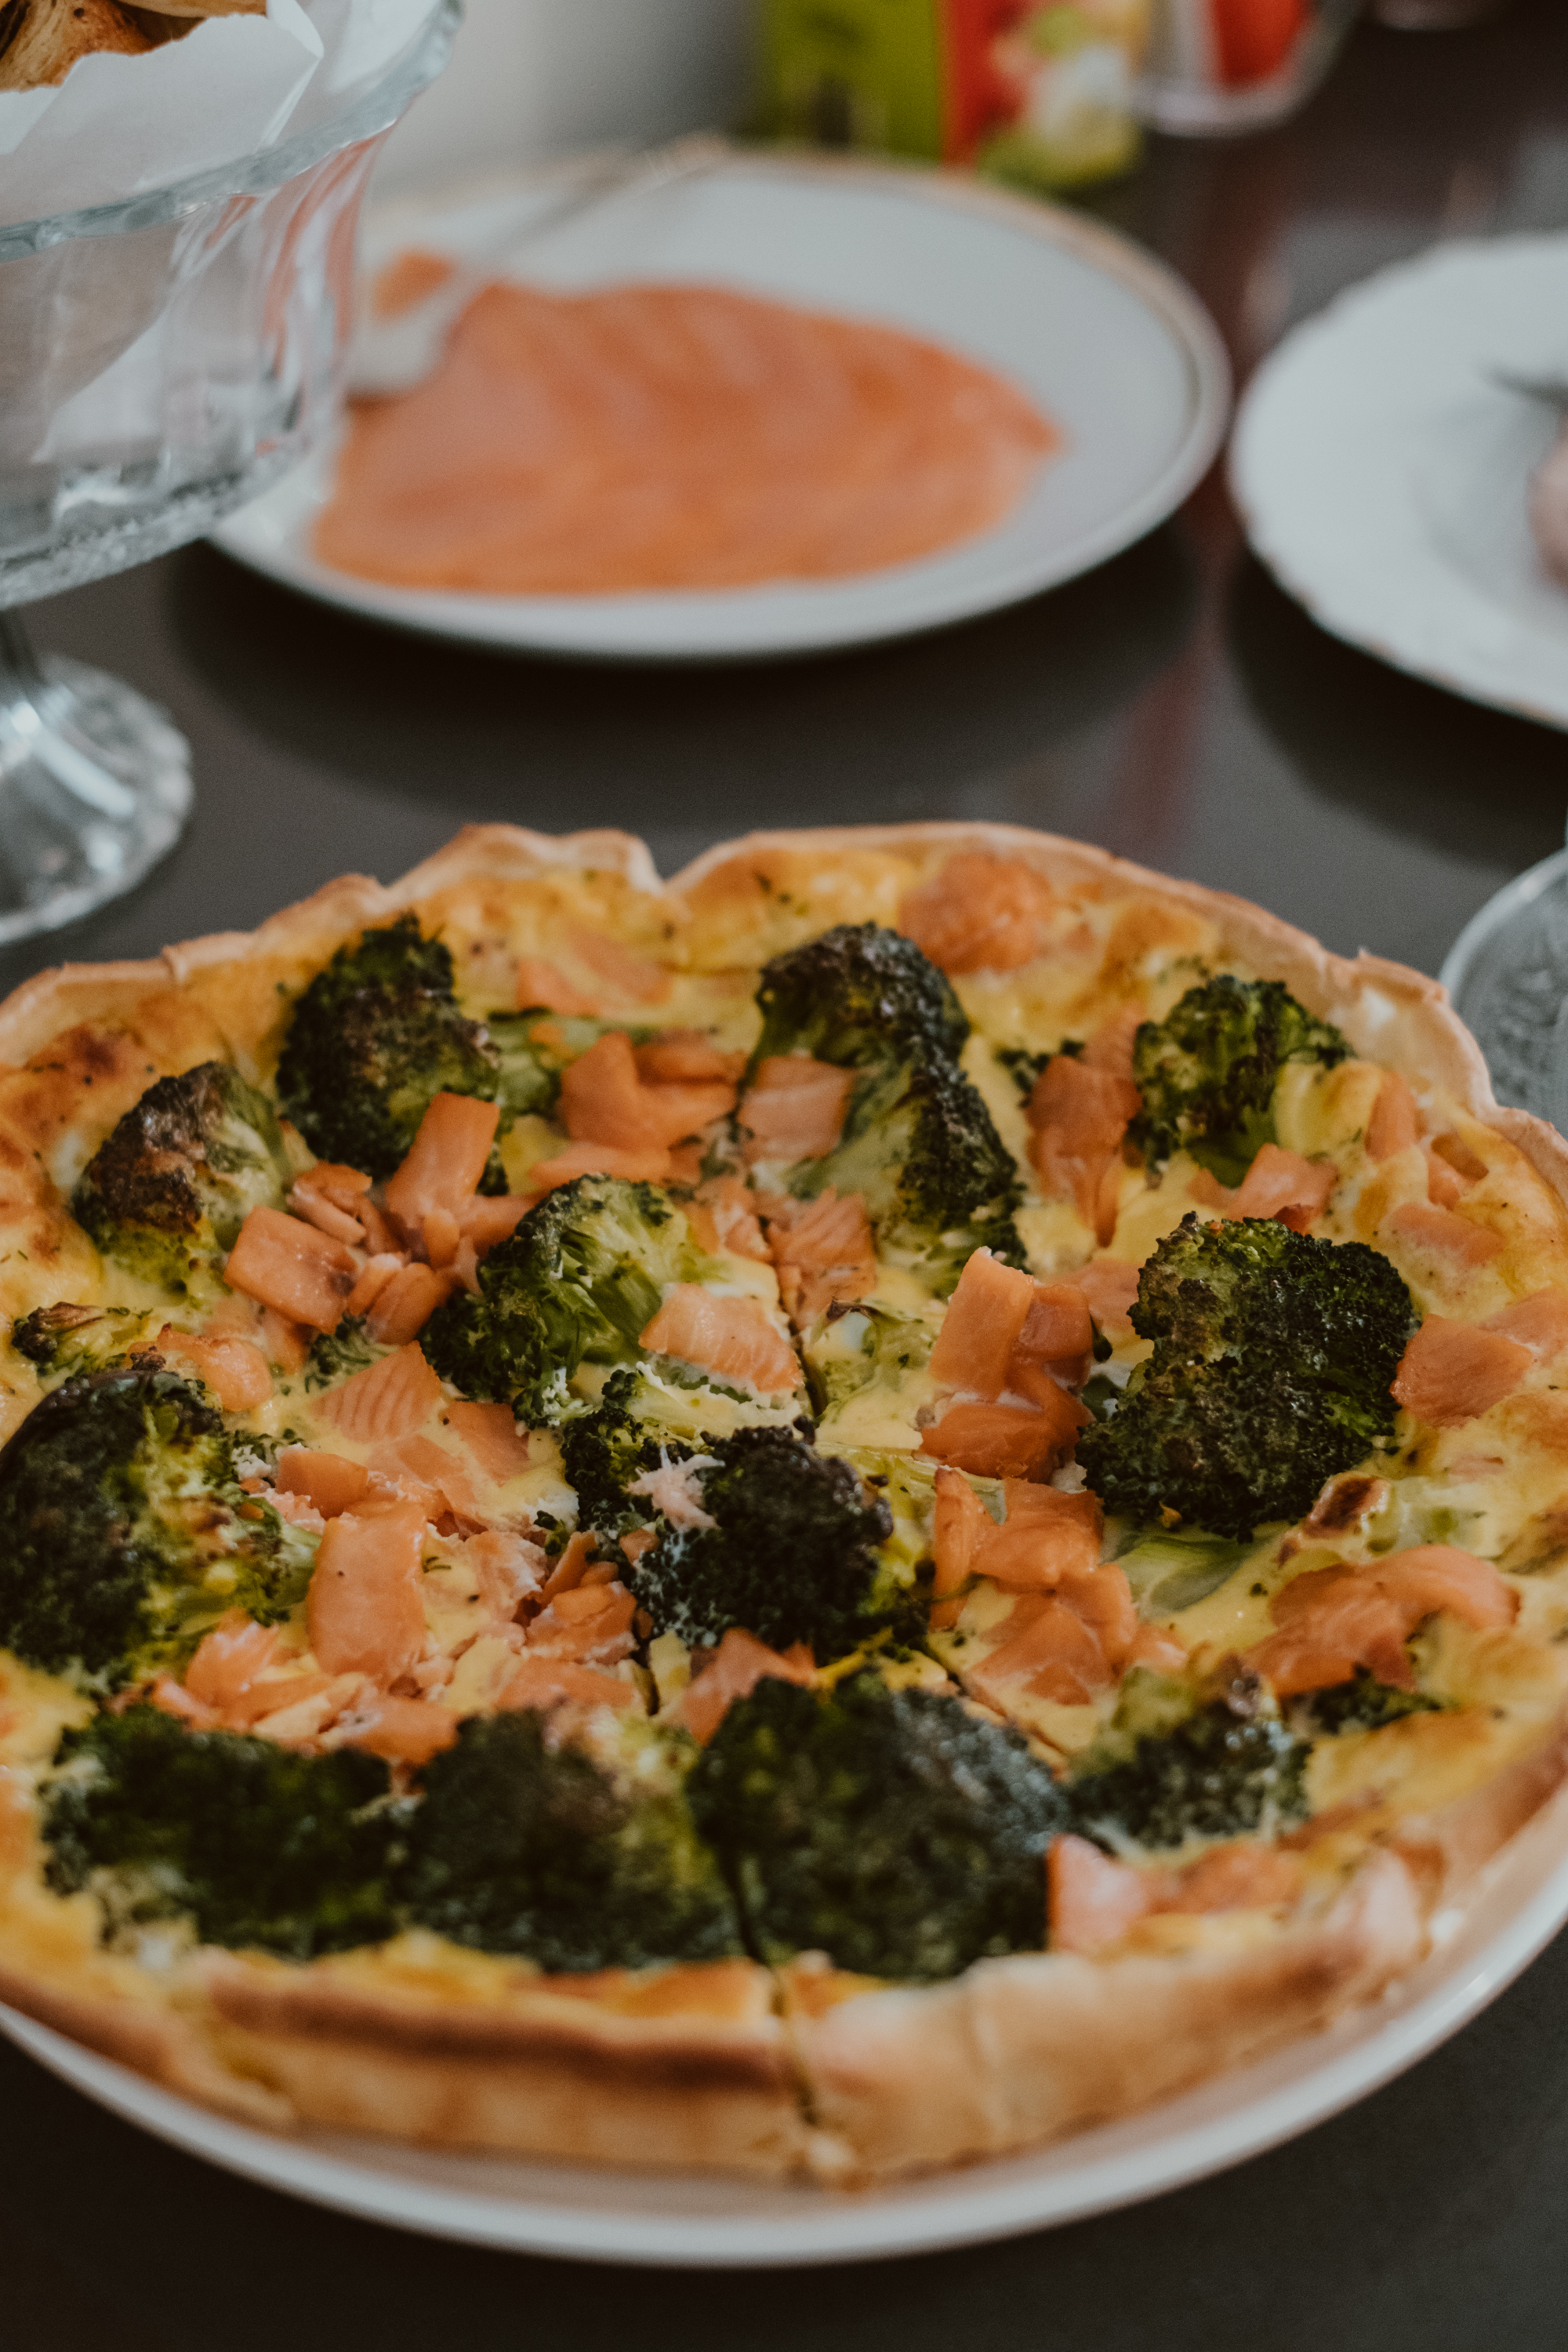 paasbrunch: Quiche met zalm en broccoli